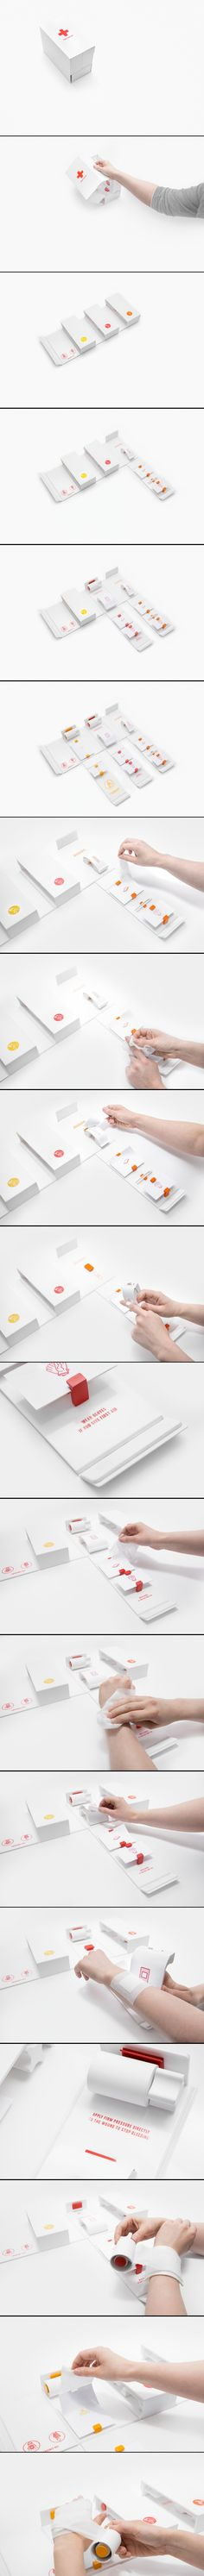 DIY FIRST AID Kit packaging by GABRIELE MELDAIKYTE for you @Antònia Calafat Capó curated by Packaging Diva